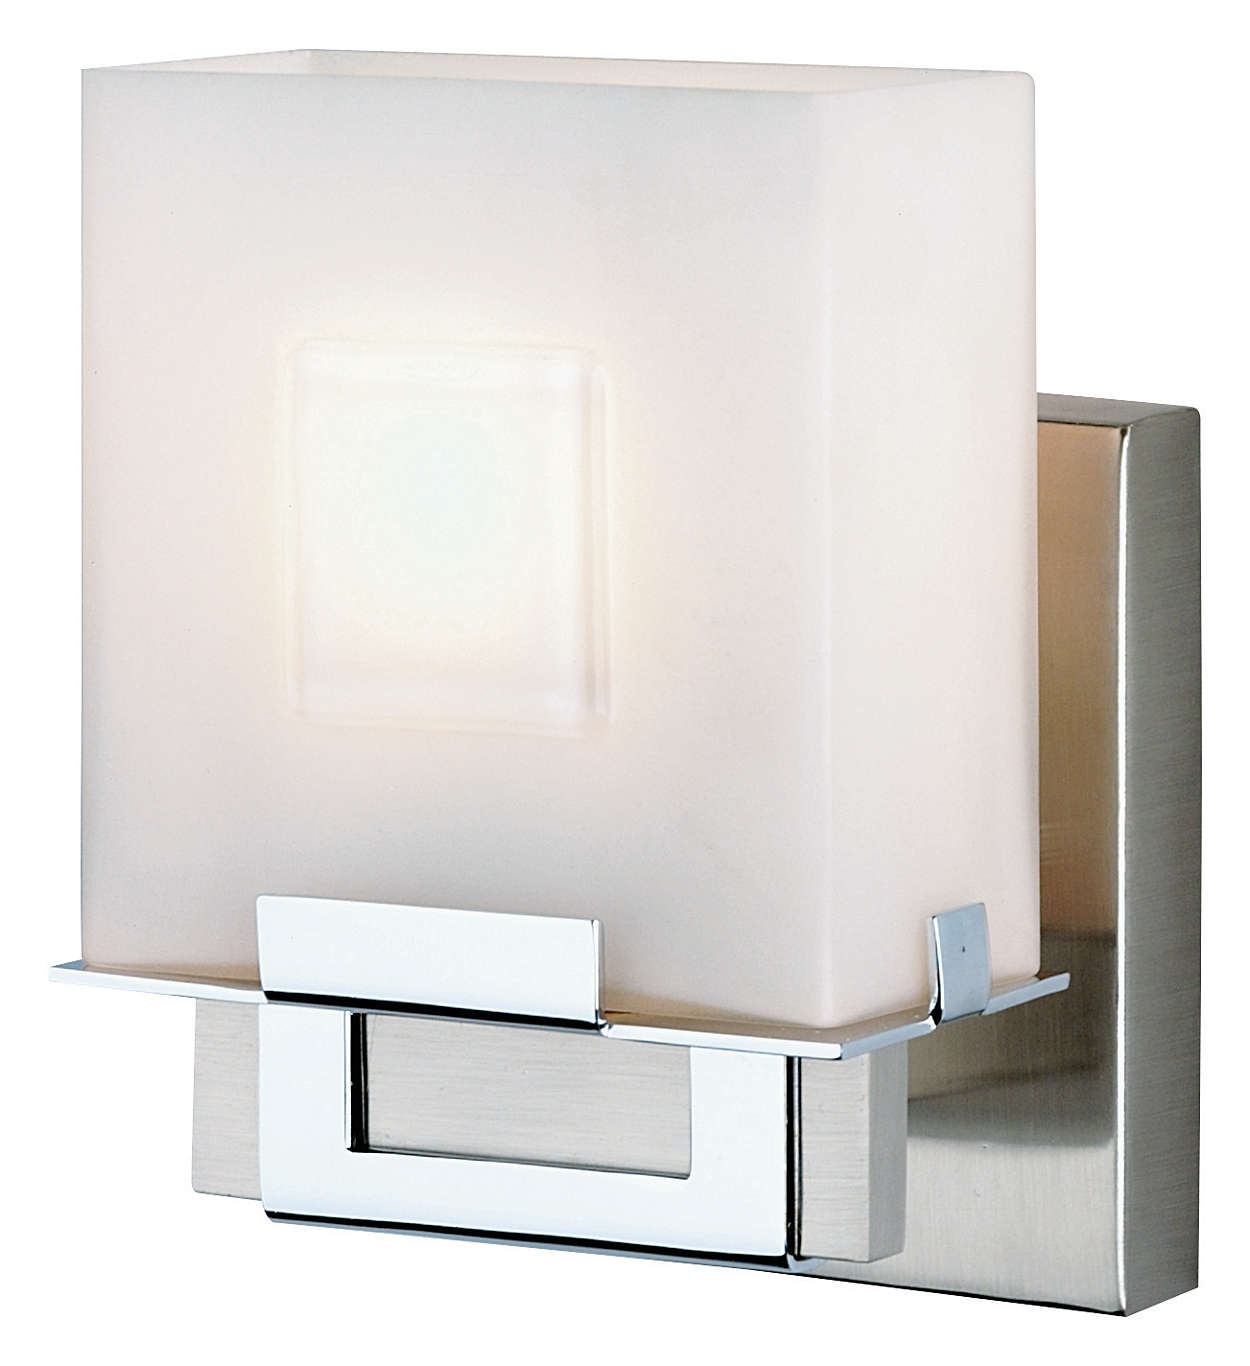 Square 1-light Bath in Satin Nickel finish